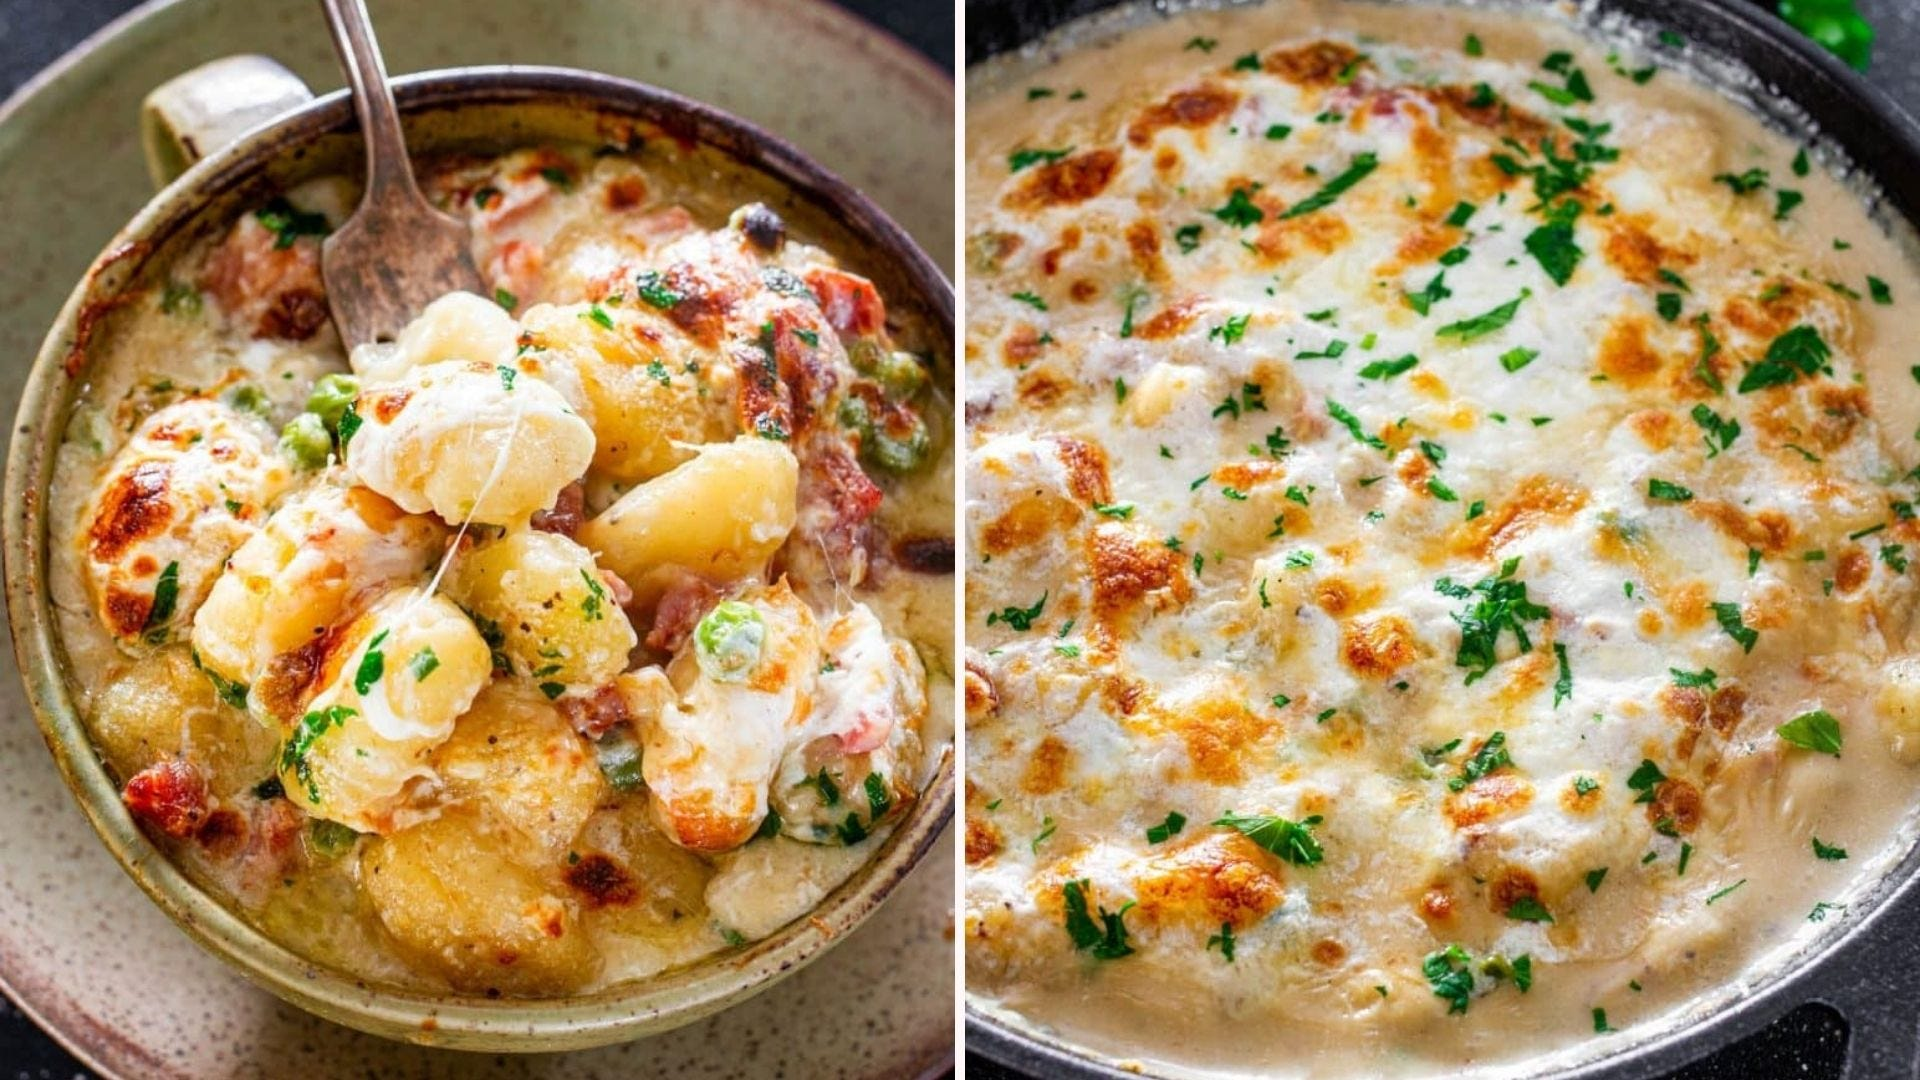 Two side-by-side images: The left is of a bowl of gnocci with stringy cheese and gorgeous broil marks and the right image is of a skillet hot out of the oven ready to be served.